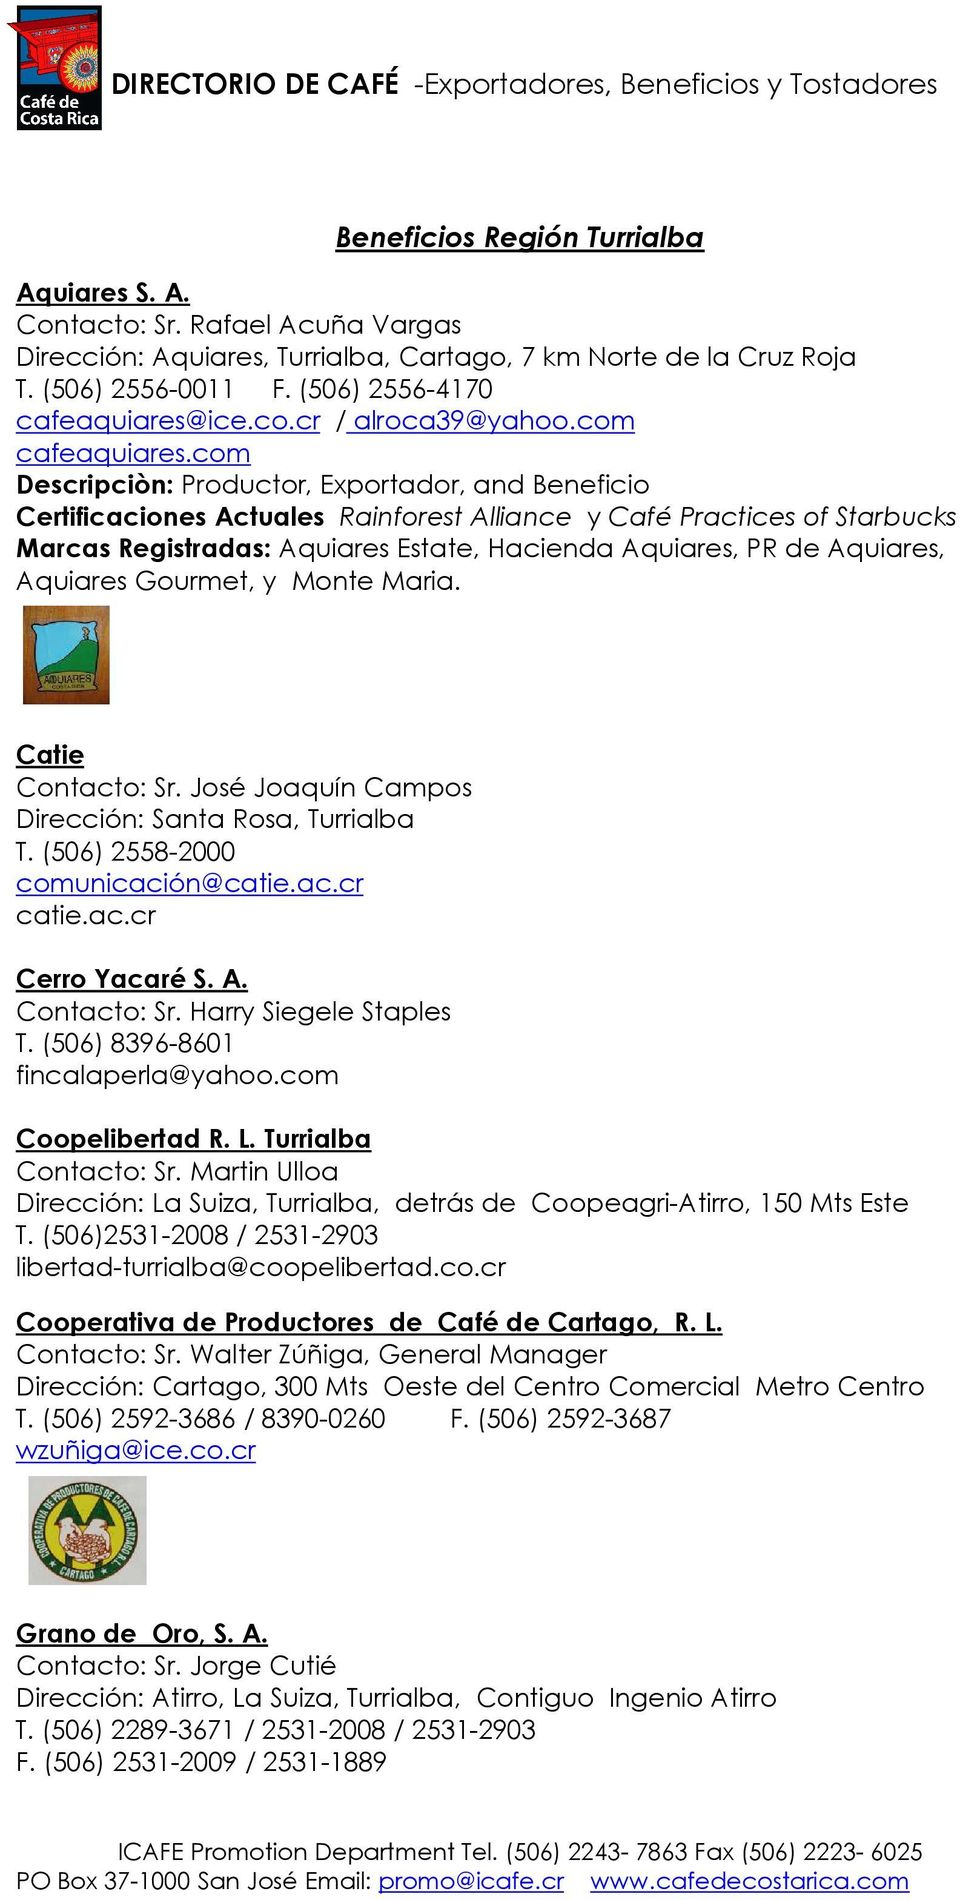 com Descripciòn: Productor, Exportador, and Beneficio Certificaciones Actuales Rainforest Alliance y Café Practices of Starbucks Marcas Registradas: Aquiares Estate, Hacienda Aquiares, PR de